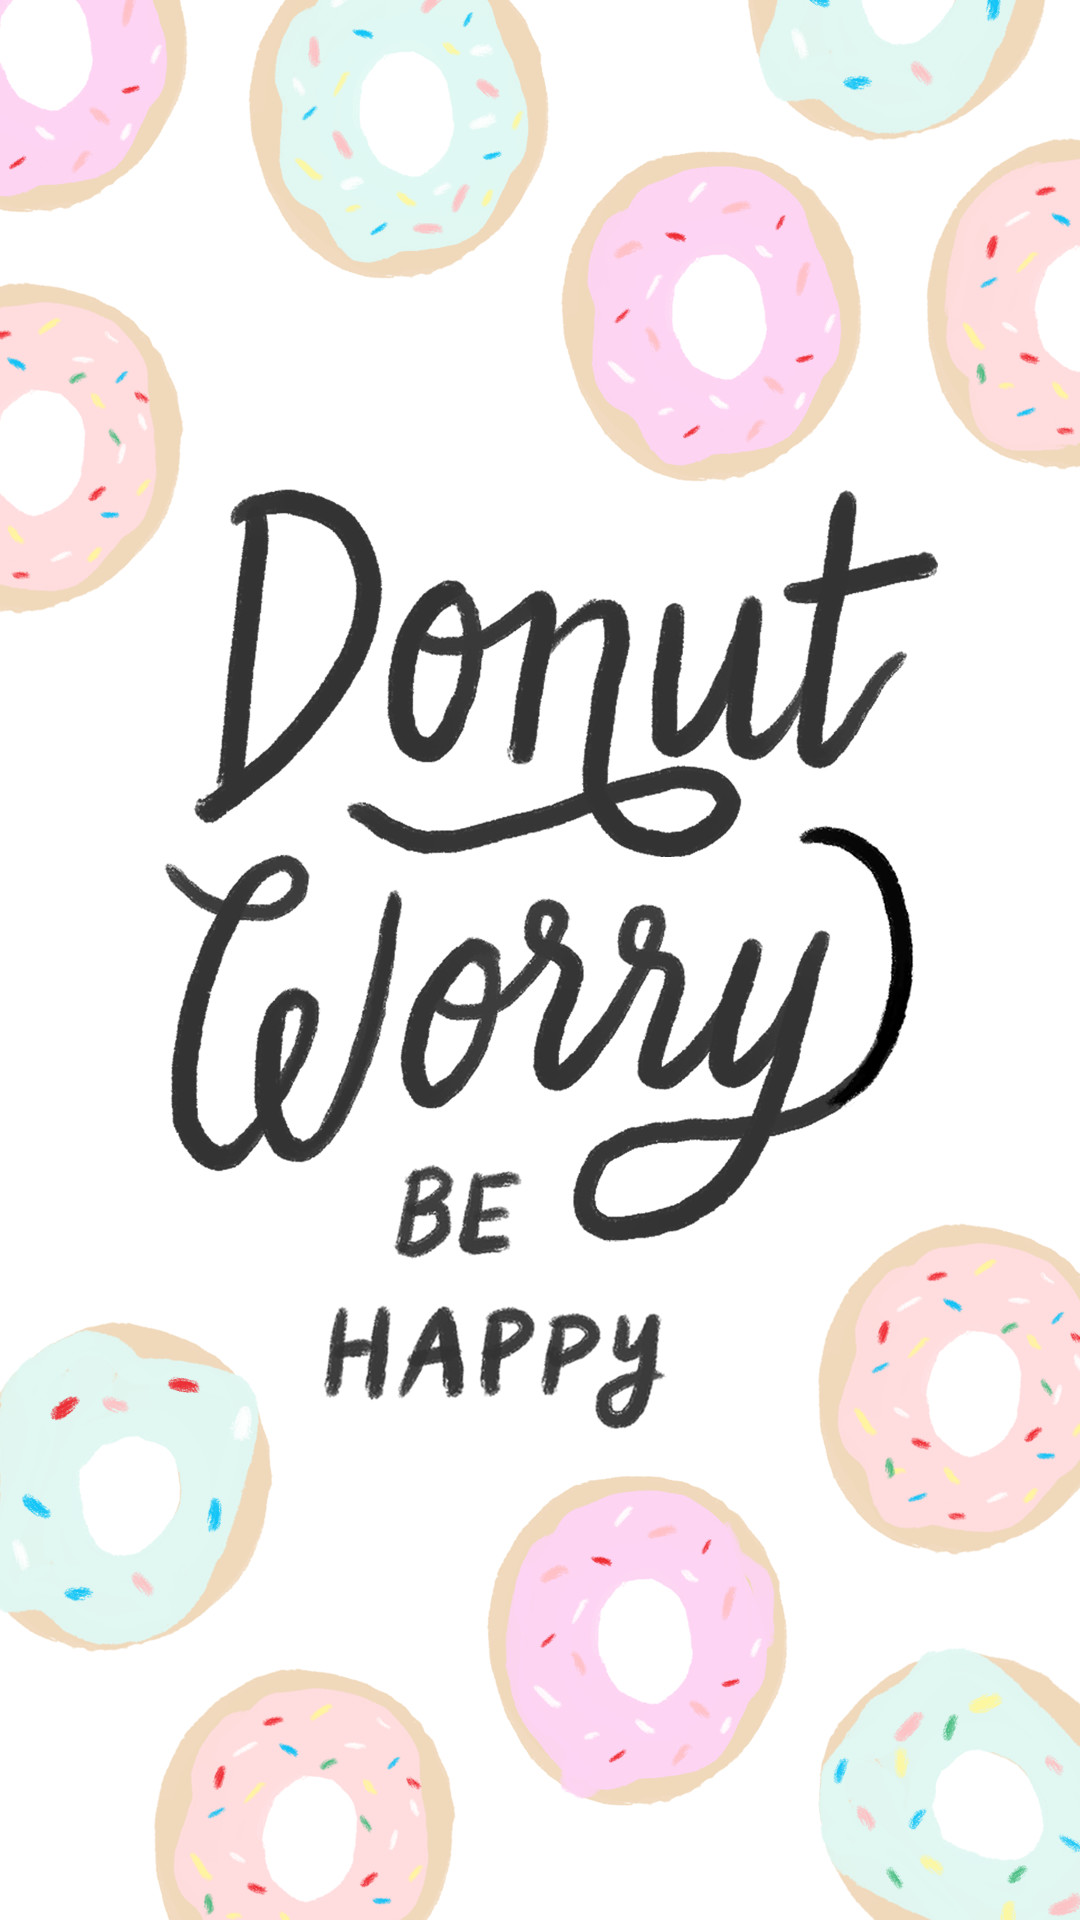 1080x1920 iphone-donut-worry.png (1080×1920) | Wallpapers | Pinterest | Wallpaper,  Donuts and Phone